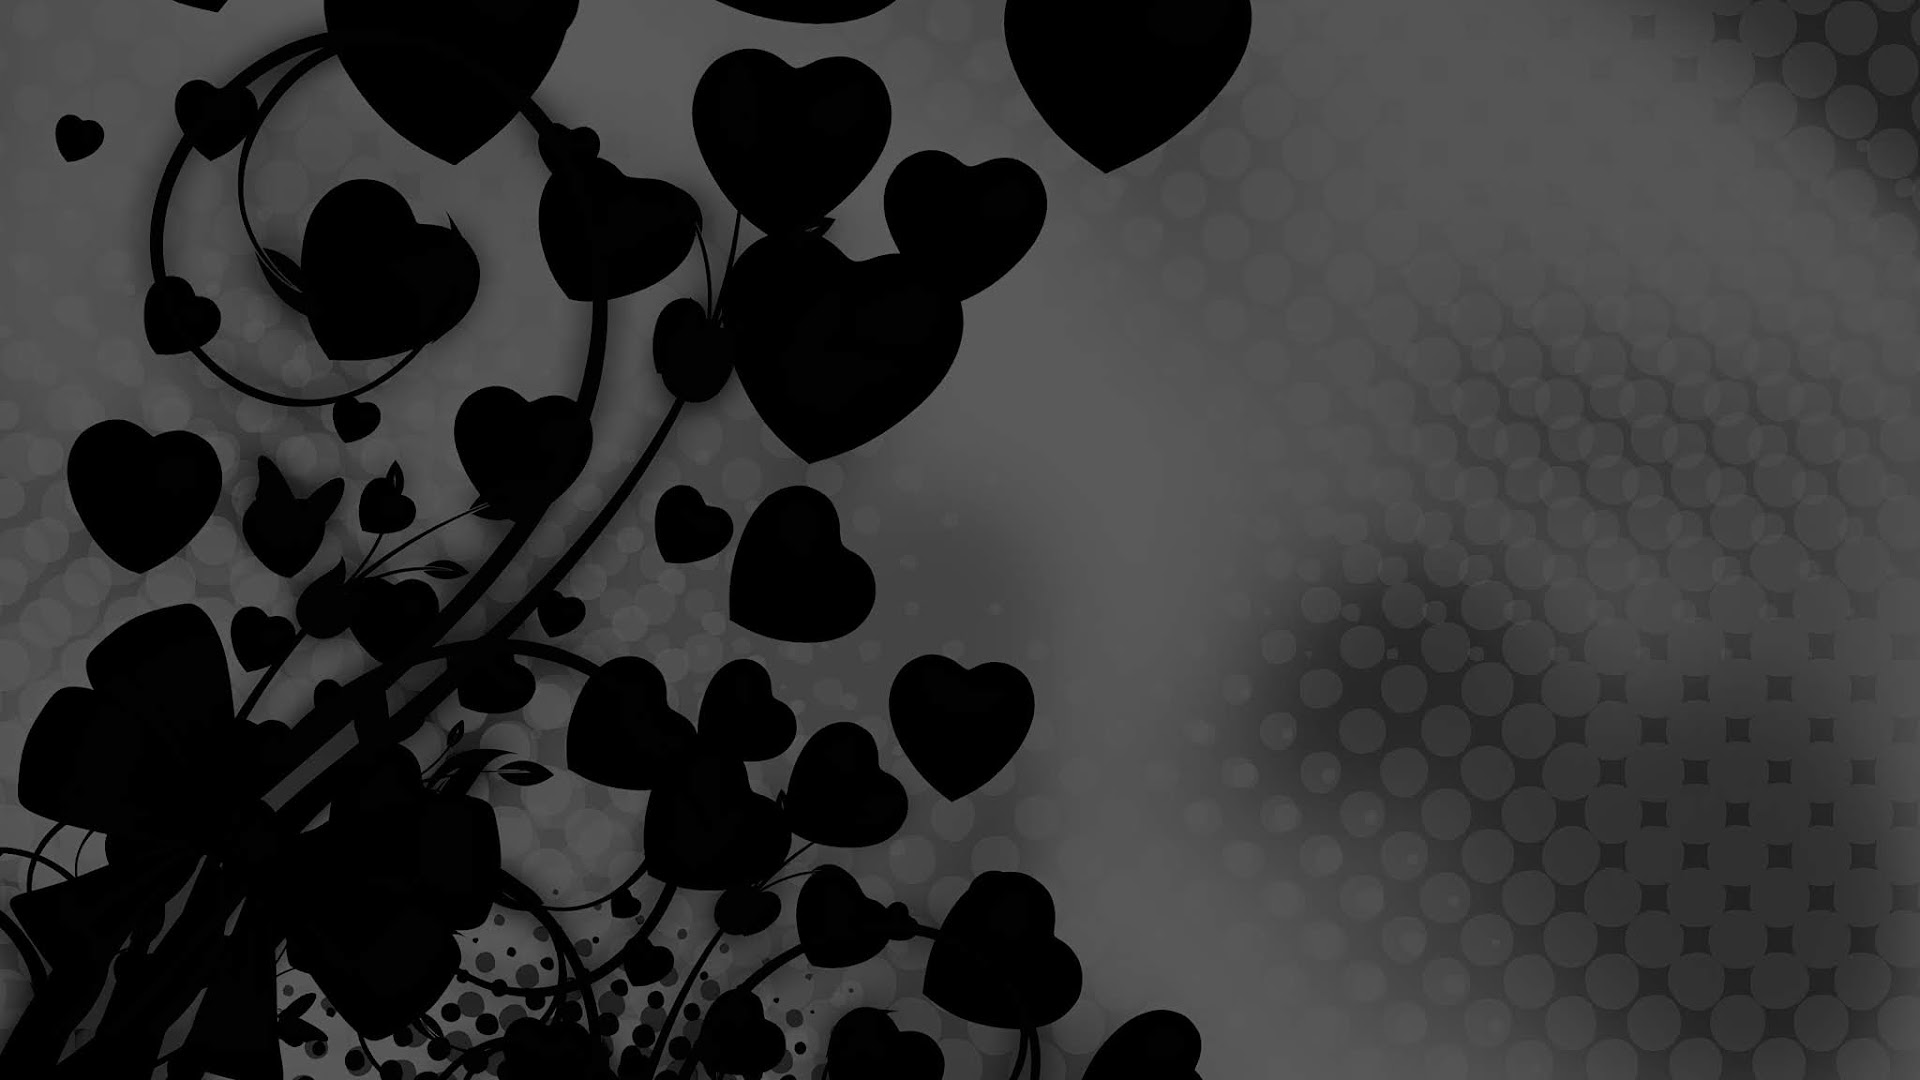 Black Valentine Backgrounds with black hearts